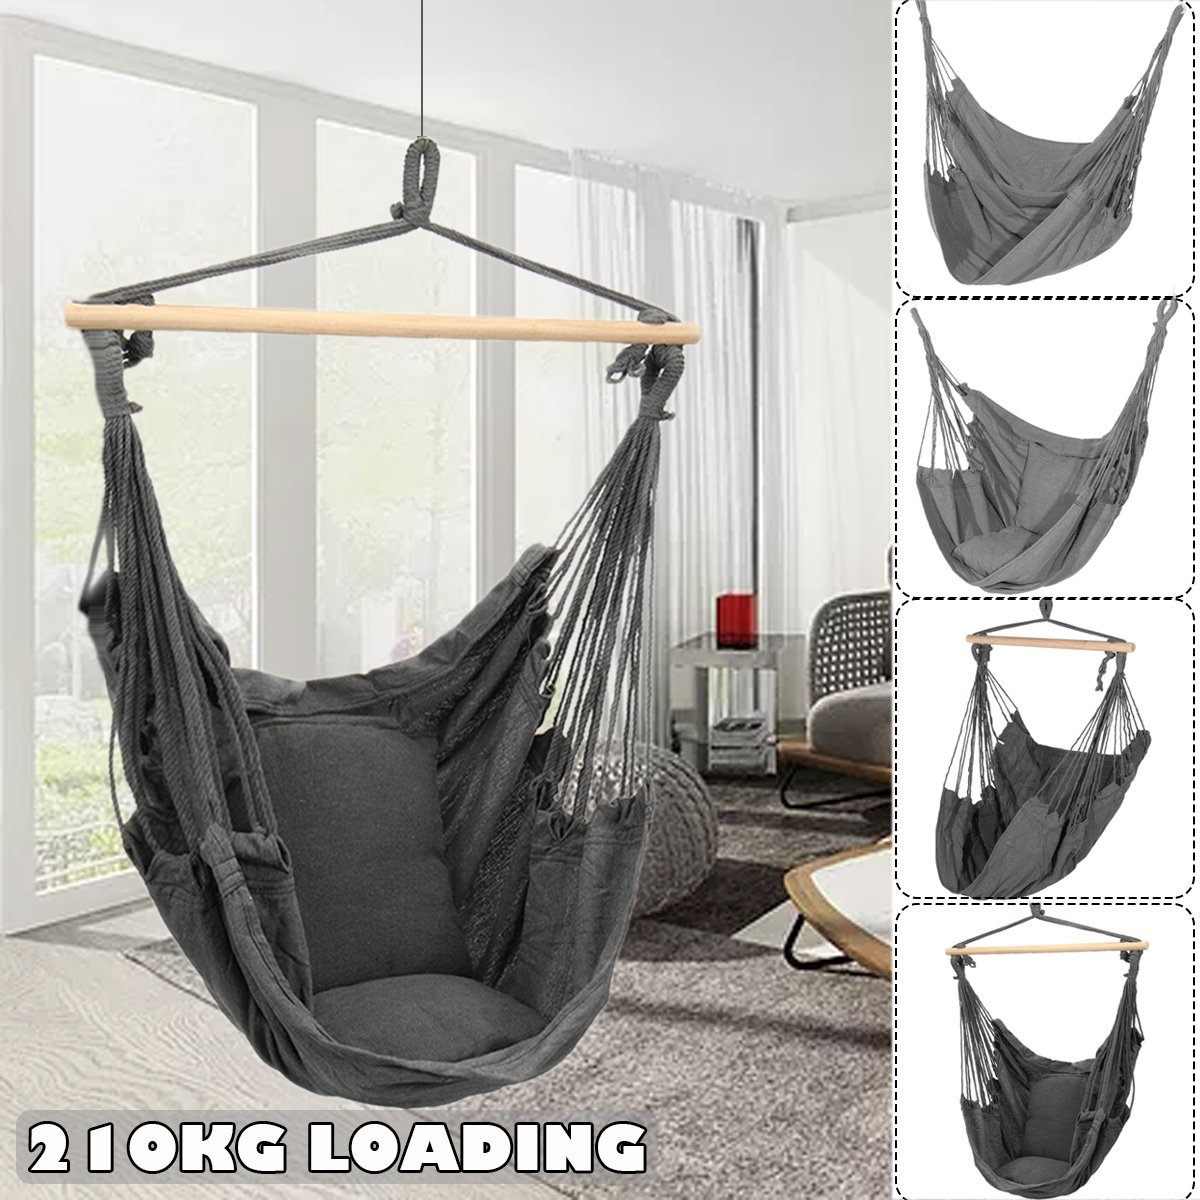 4 Options Hanging Hammock Chair Seat Cotton Swing Seat Set Hanging Hardware Kit Hammock Rope Chair Cushion For Home Garden Patio Porch Indoor Outdoor Walmart Canada